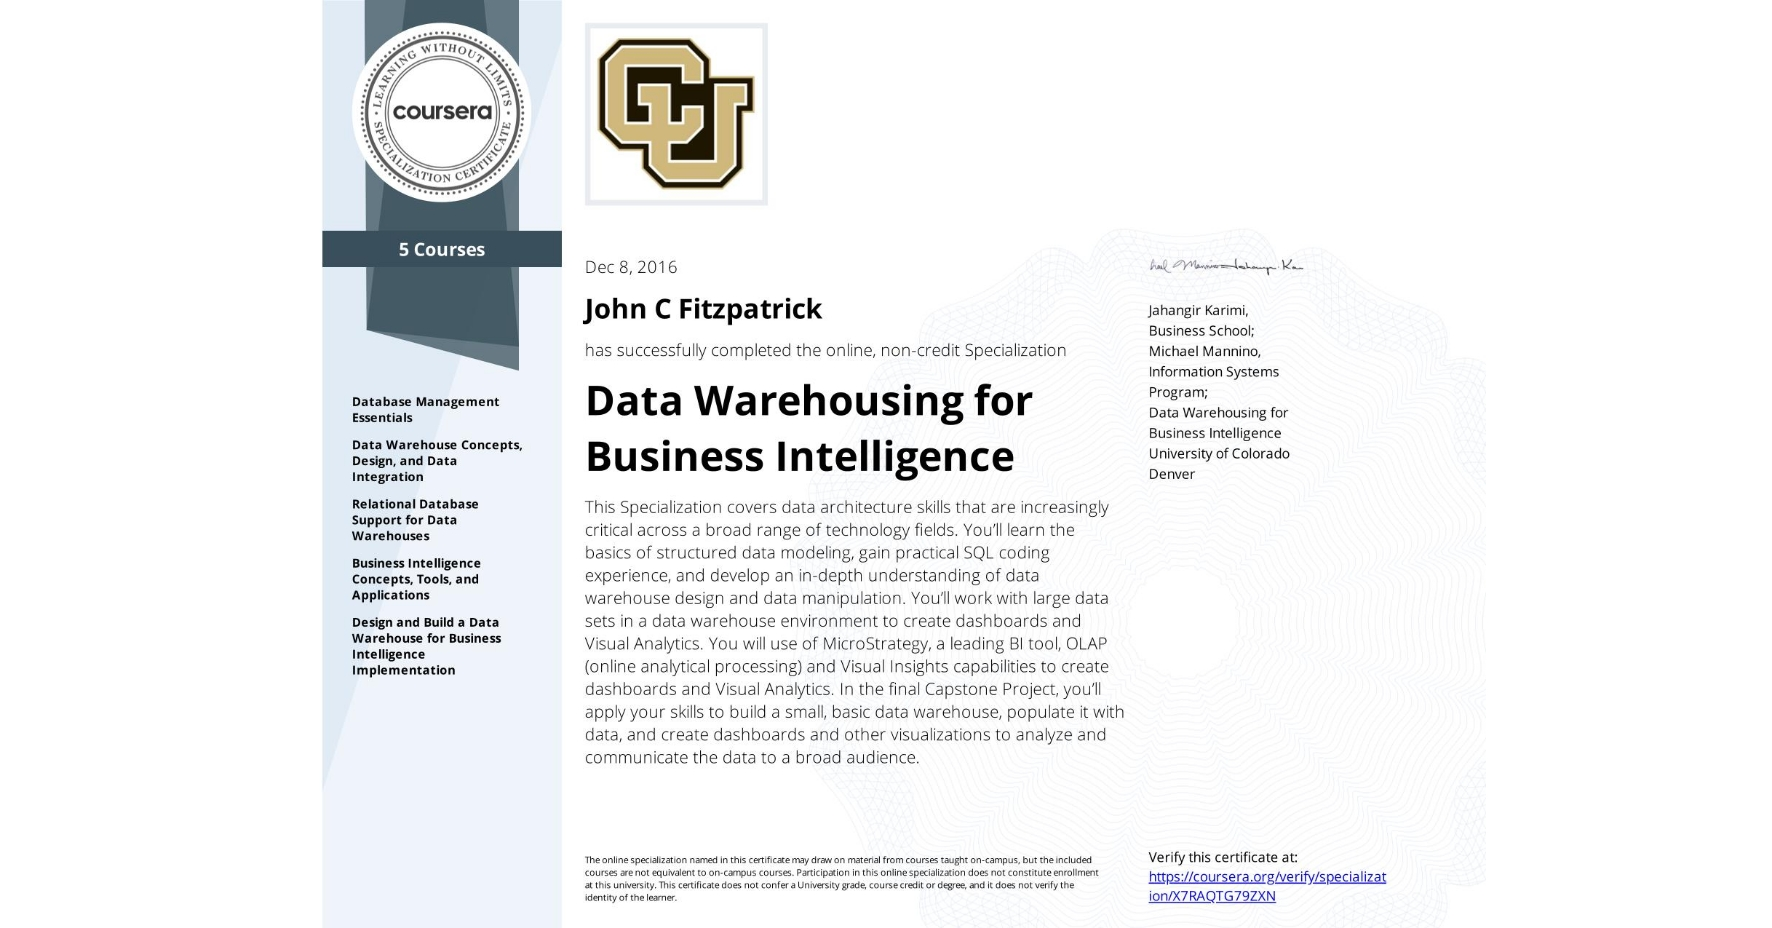 View certificate for John C Fitzpatrick, Data Warehousing for Business Intelligence, offered through Coursera. This Specialization covers data architecture skills that are increasingly critical across a broad range of technology fields. You'll learn the basics of structured data modeling, gain practical SQL coding experience, and develop an in-depth understanding of data warehouse design and data manipulation. You'll work with large data sets in a data warehouse environment to create dashboards and Visual Analytics. You will use of MicroStrategy, a leading BI tool, OLAP (online analytical processing) and Visual Insights capabilities to create dashboards and Visual Analytics. In the final Capstone Project, you'll apply your skills to build a small, basic data warehouse, populate it with data, and create dashboards and other visualizations to analyze and communicate the data to a broad audience.